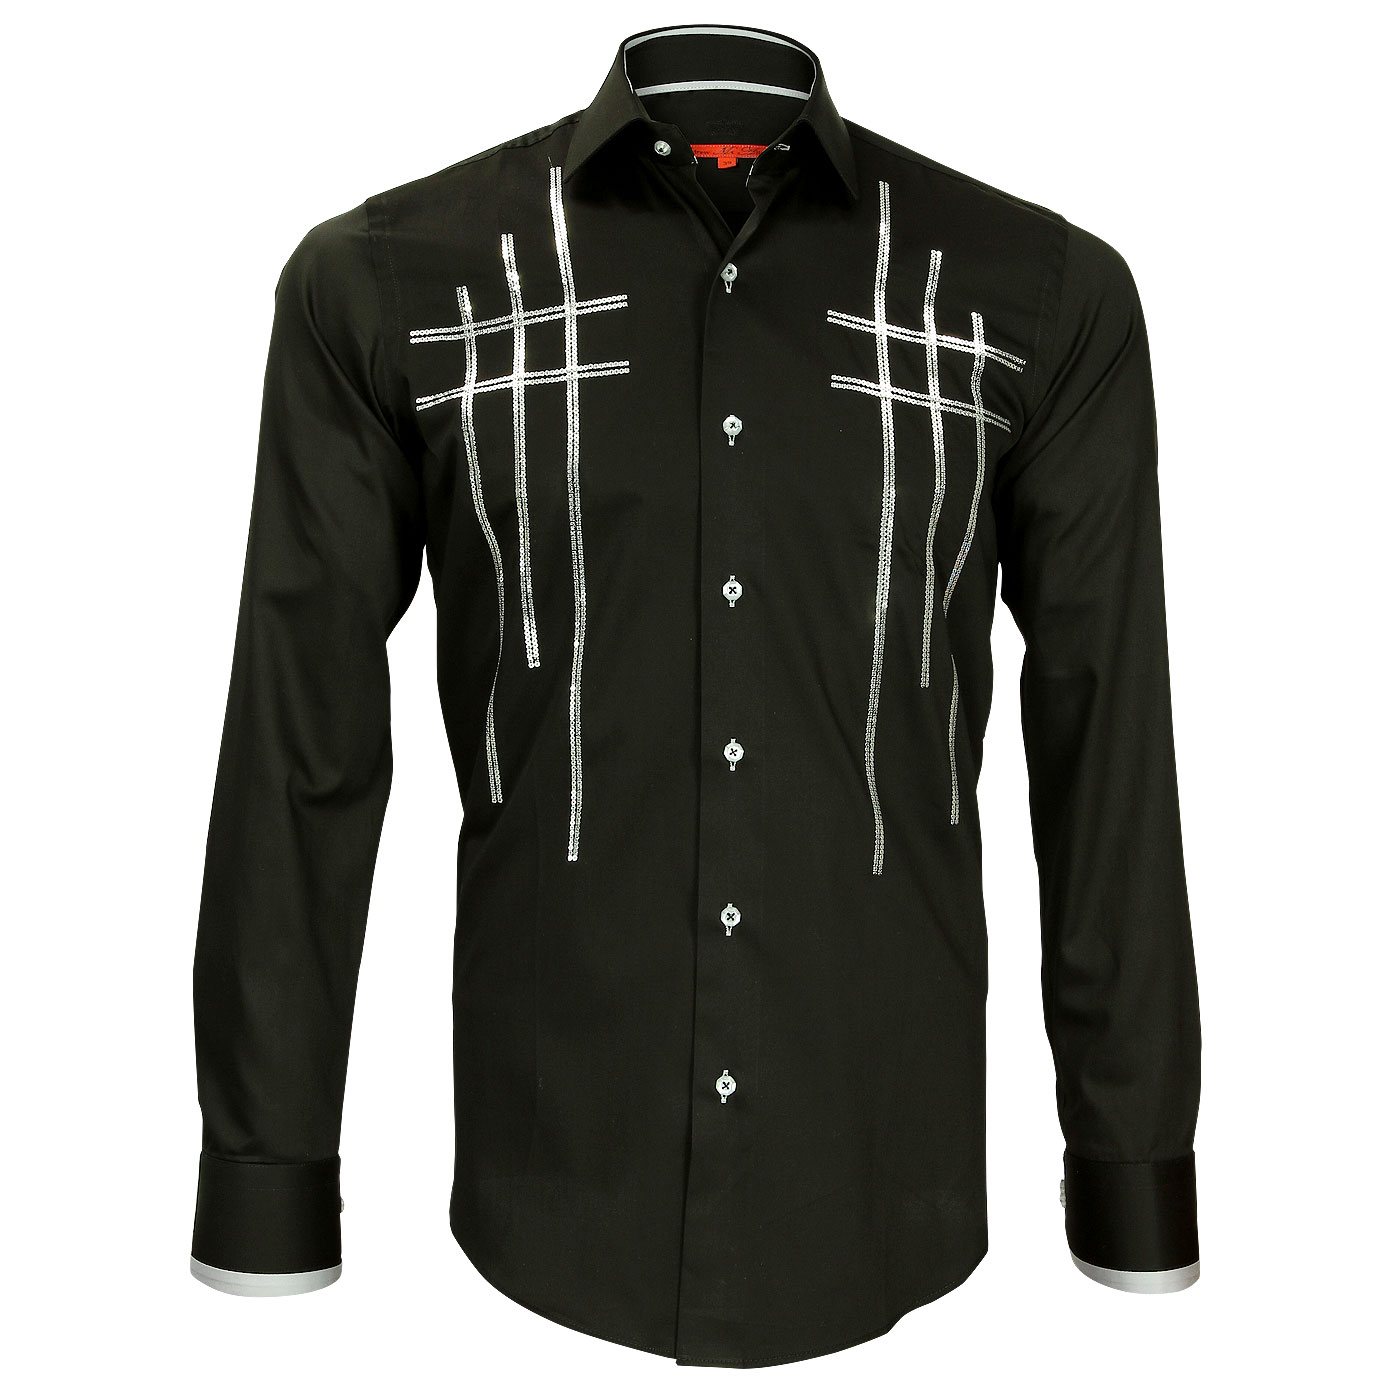 Black shirt for men, selling men's shirt: Webmenshirts